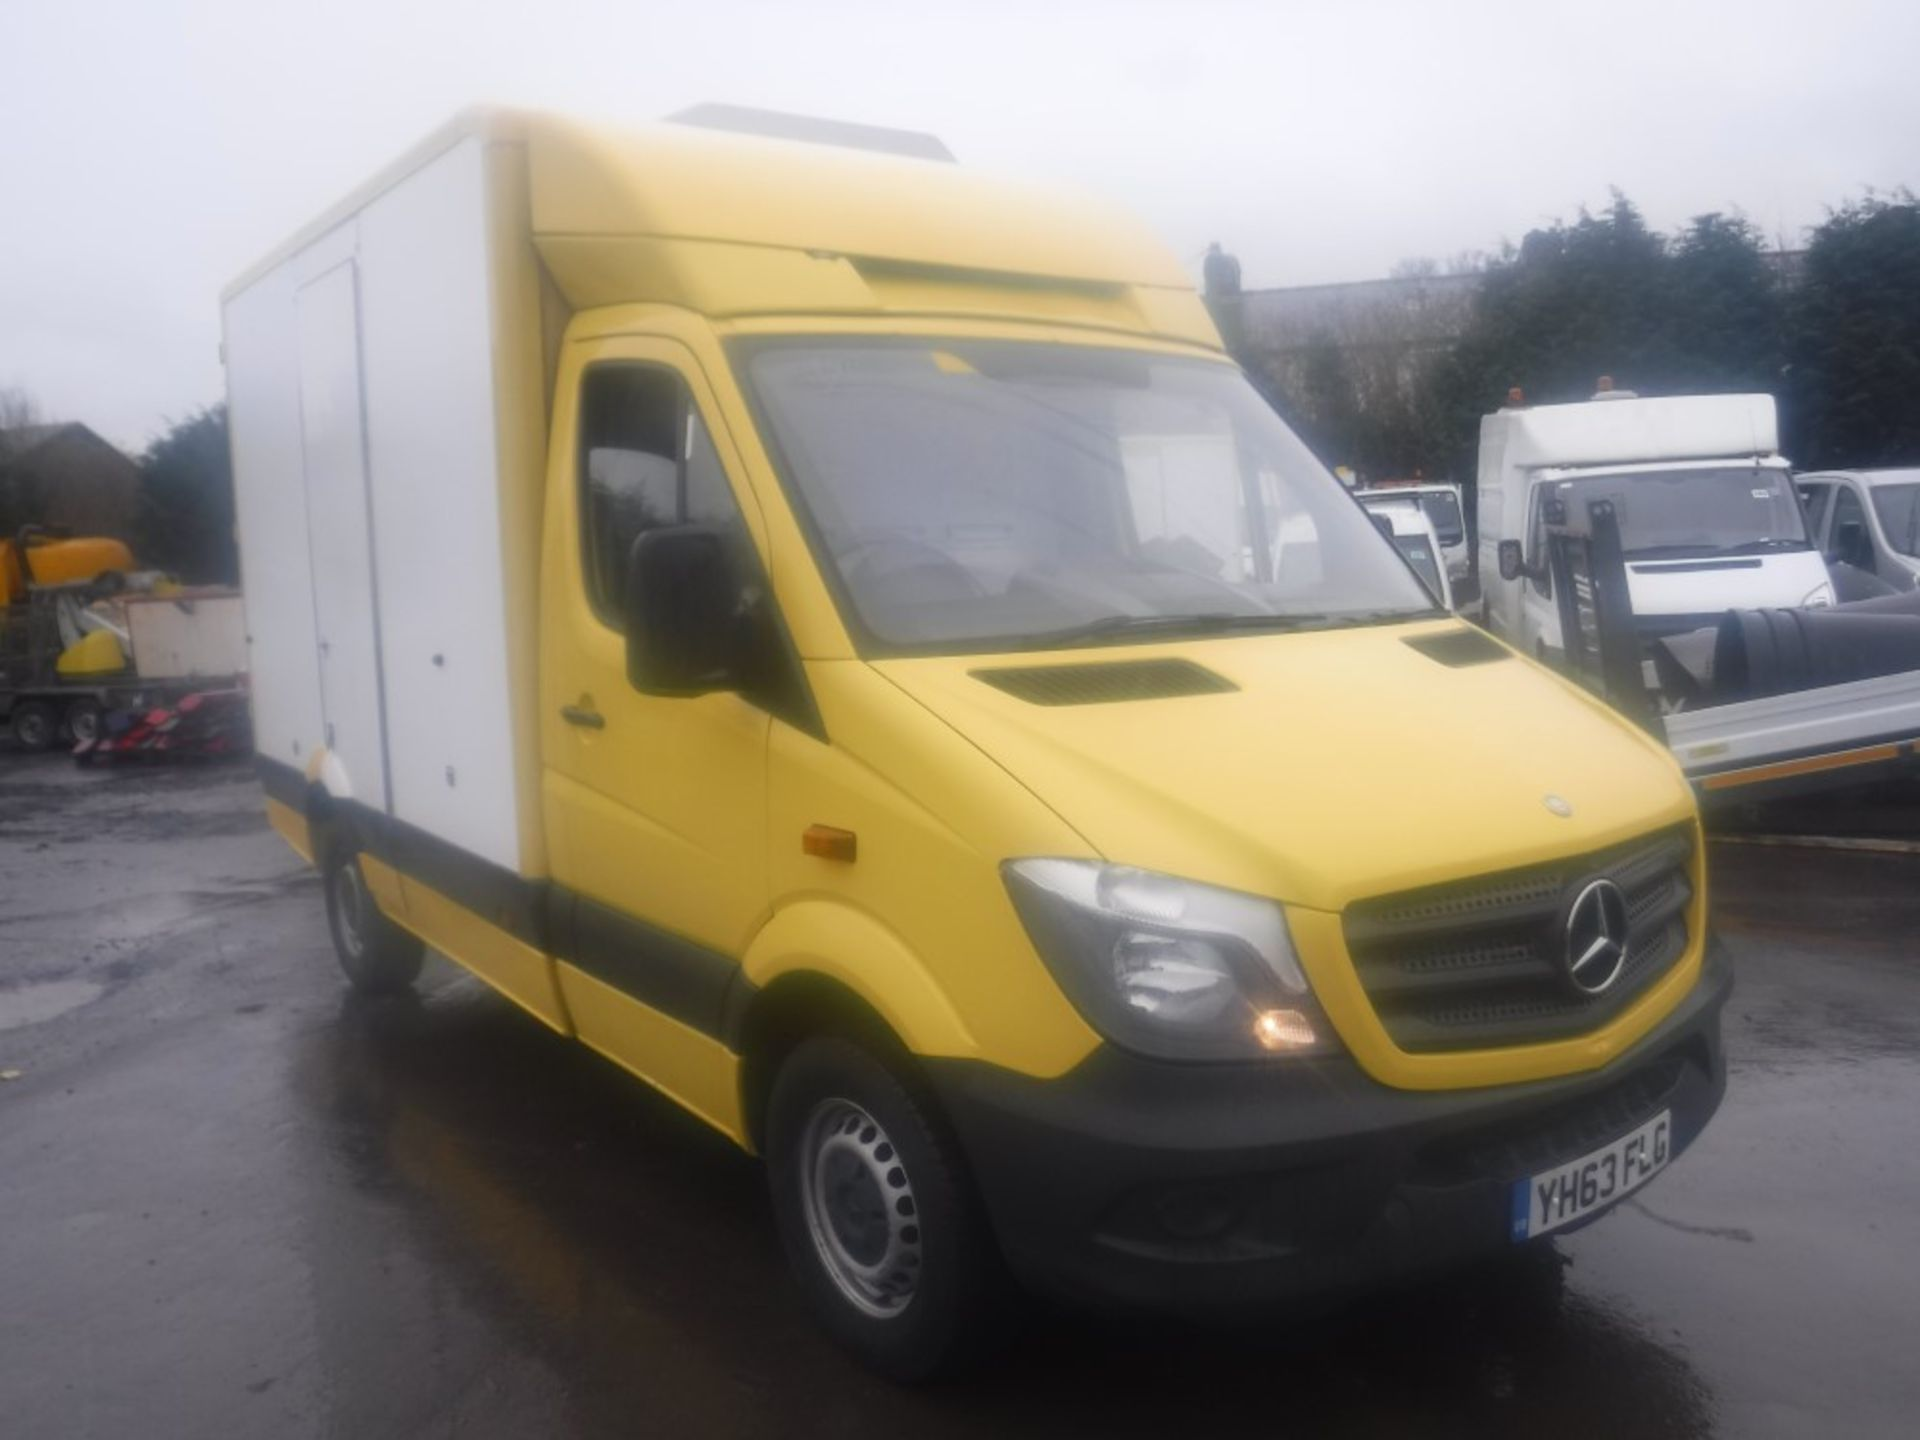 Lot 15 - 63 reg MERCEDES SPRINTER 313 CDI BOX VAN, 1ST REG 12/13, TEST 12/19, 305073M WARRANTED, V5 HERE, 1